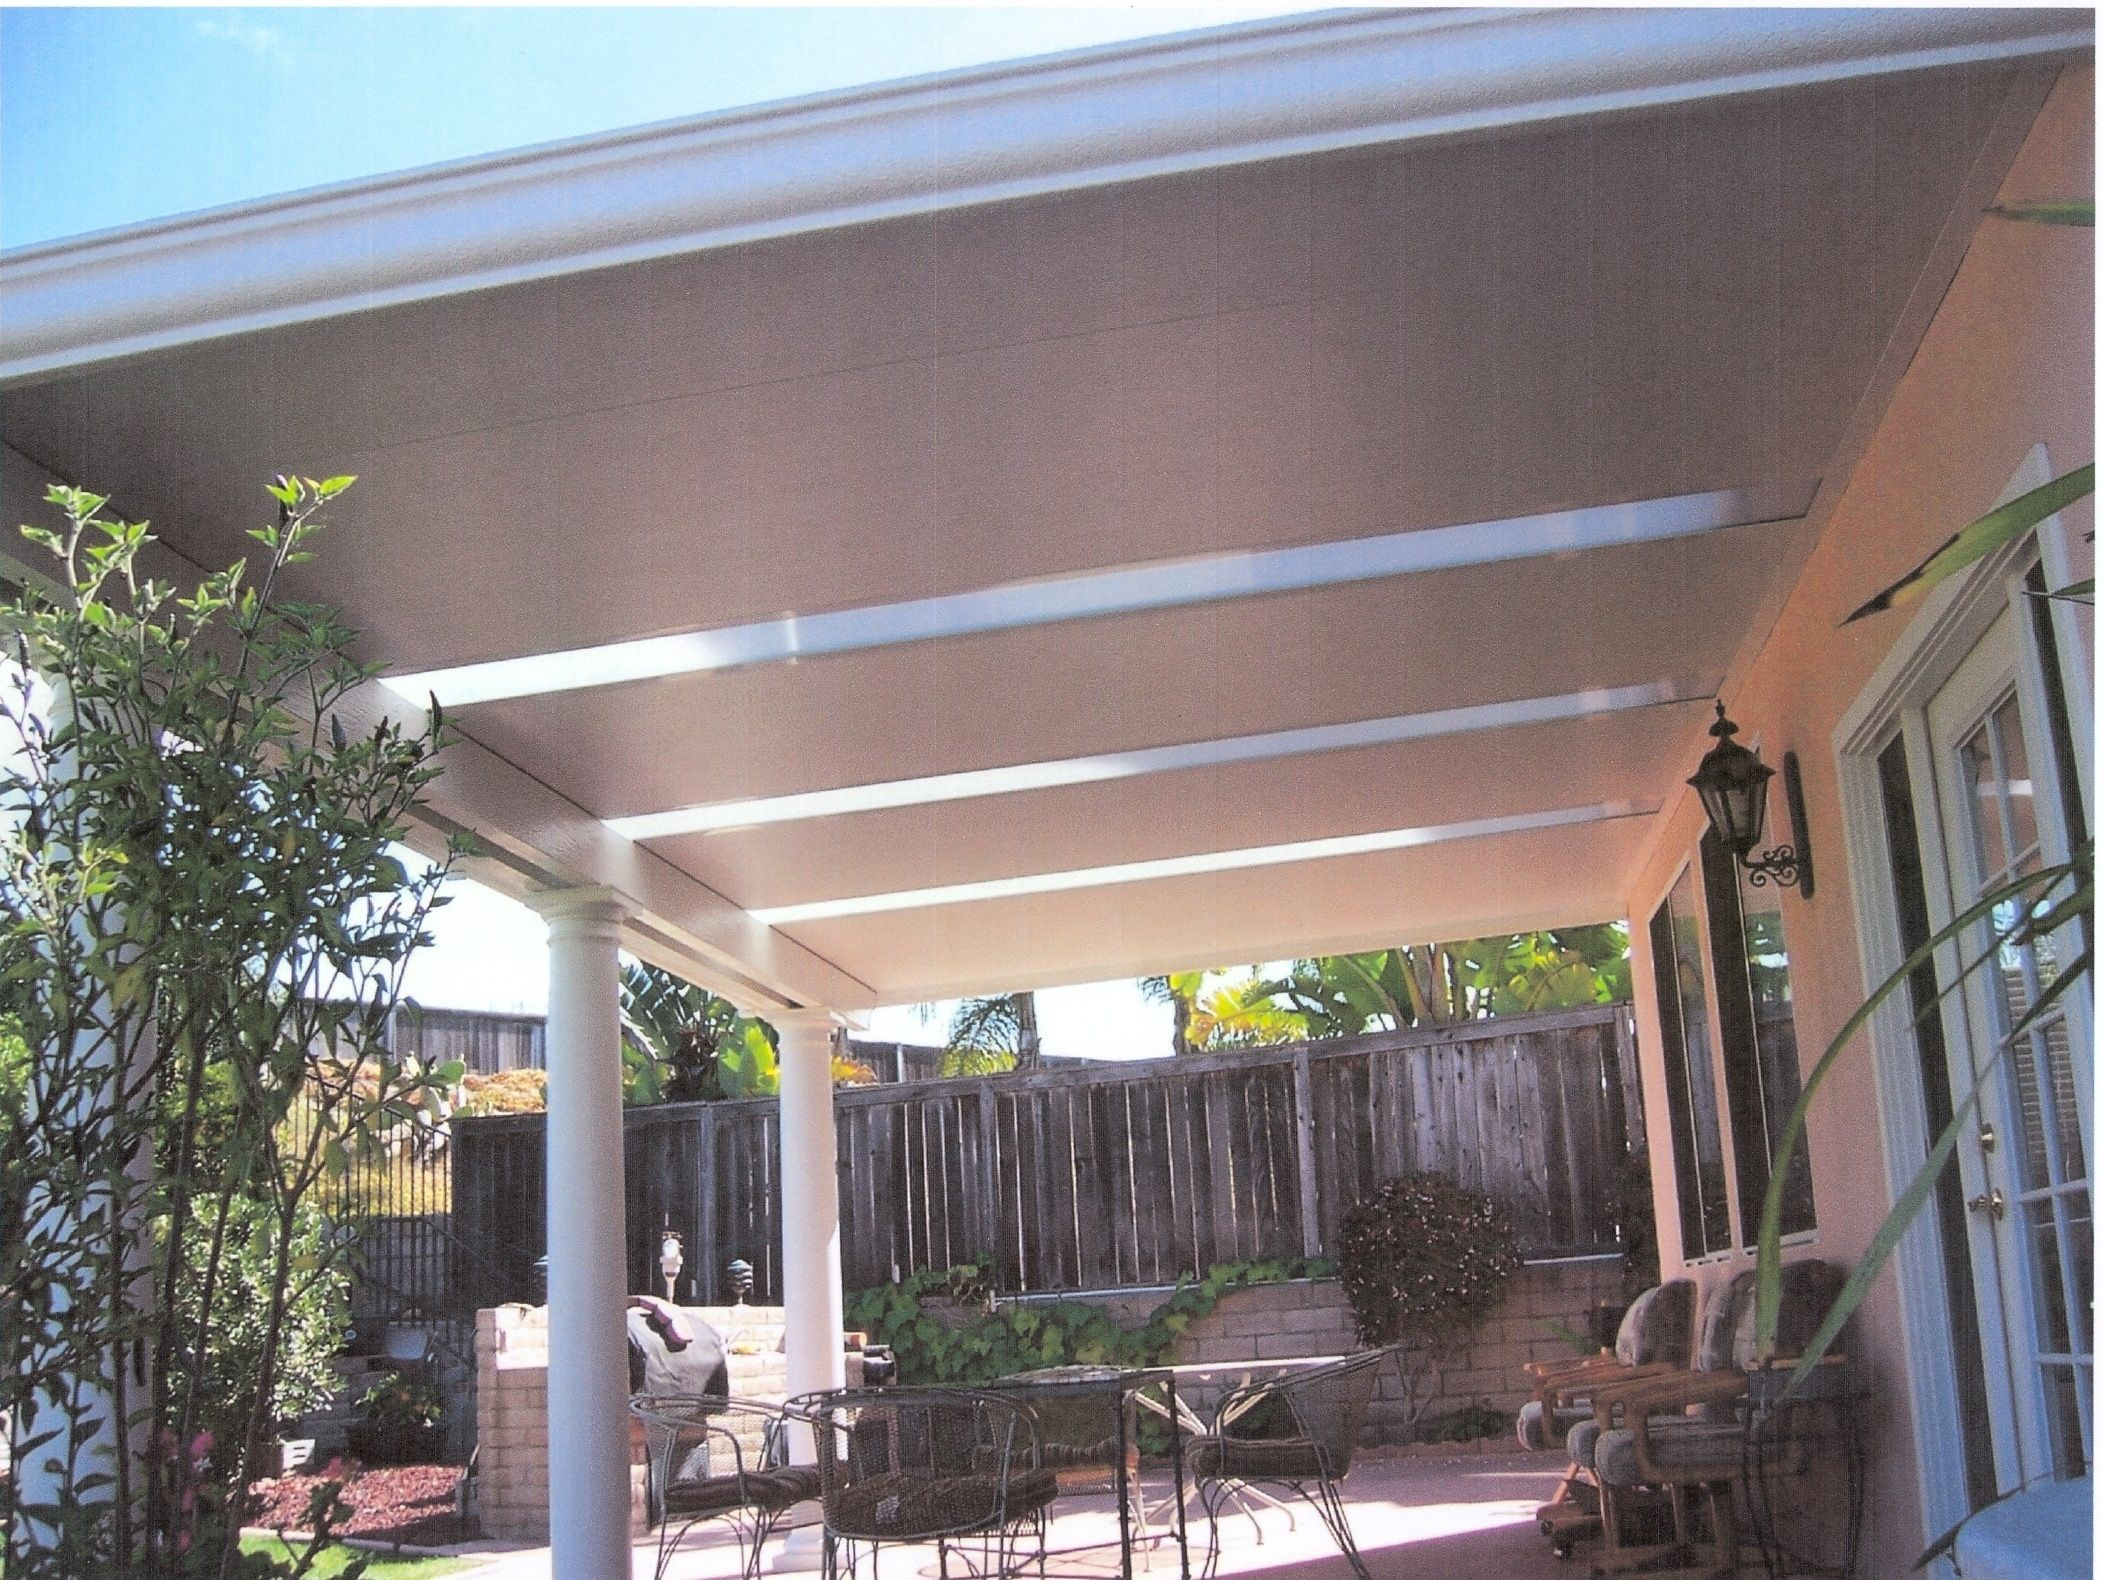 Patio Cover Skylight Ideas For My Backyard Pinterest Skylight And Patios